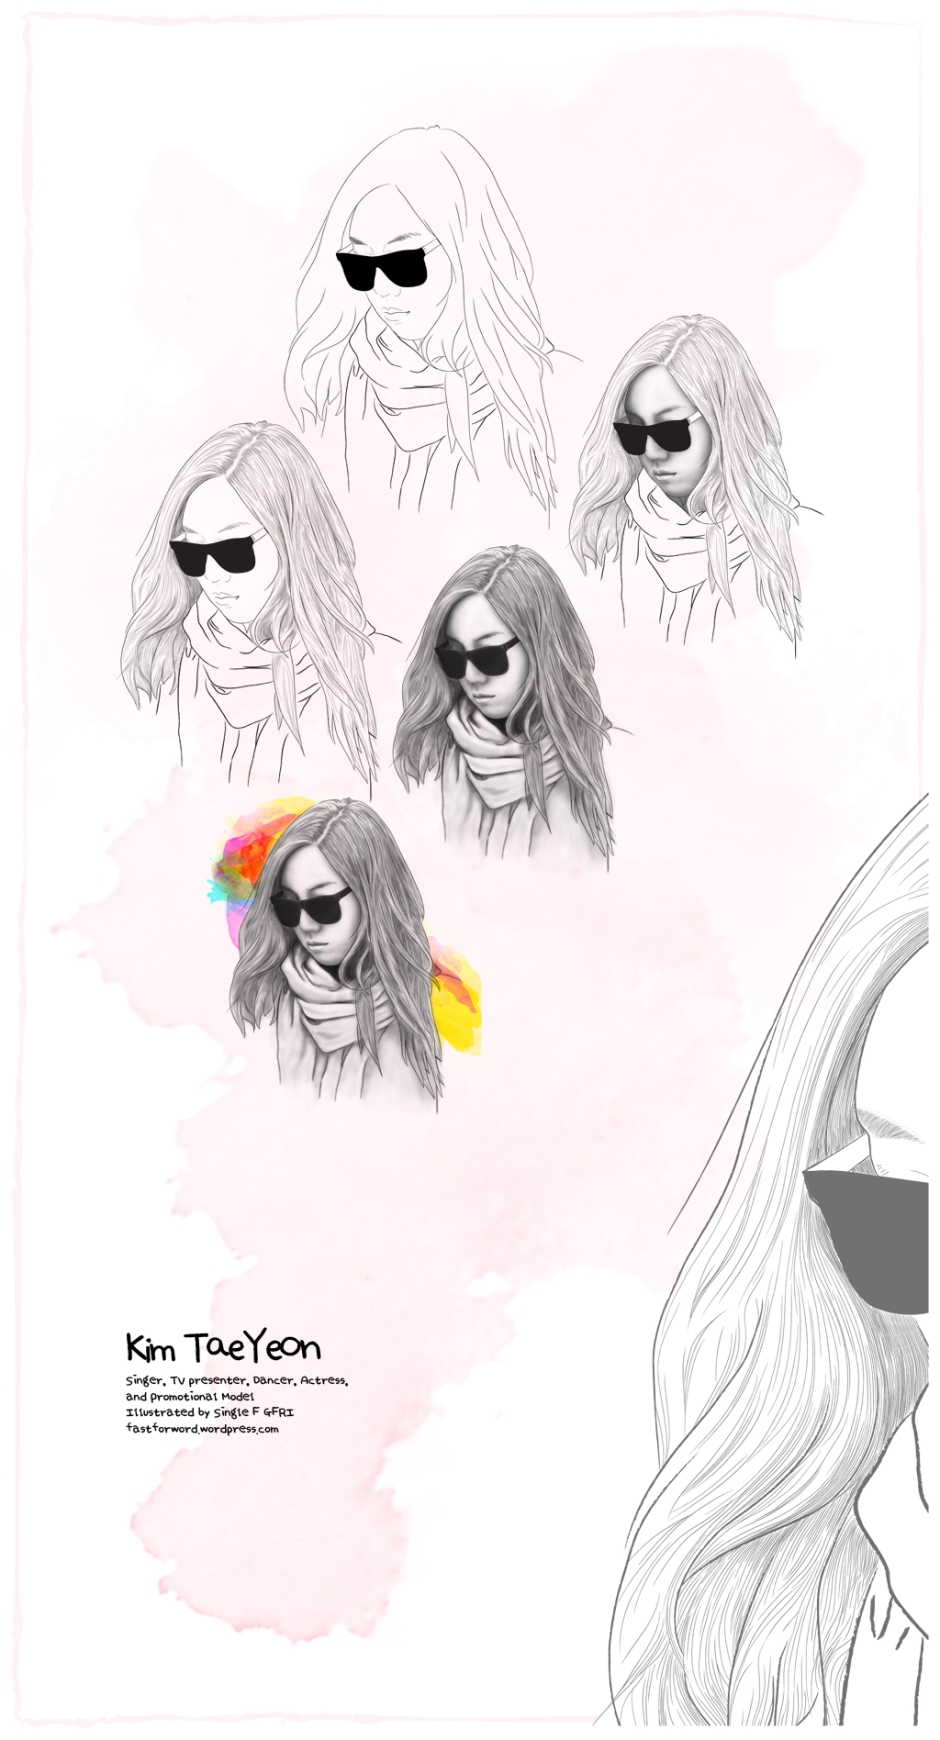 Kim TaeYeon Illustration Progress by GFRI